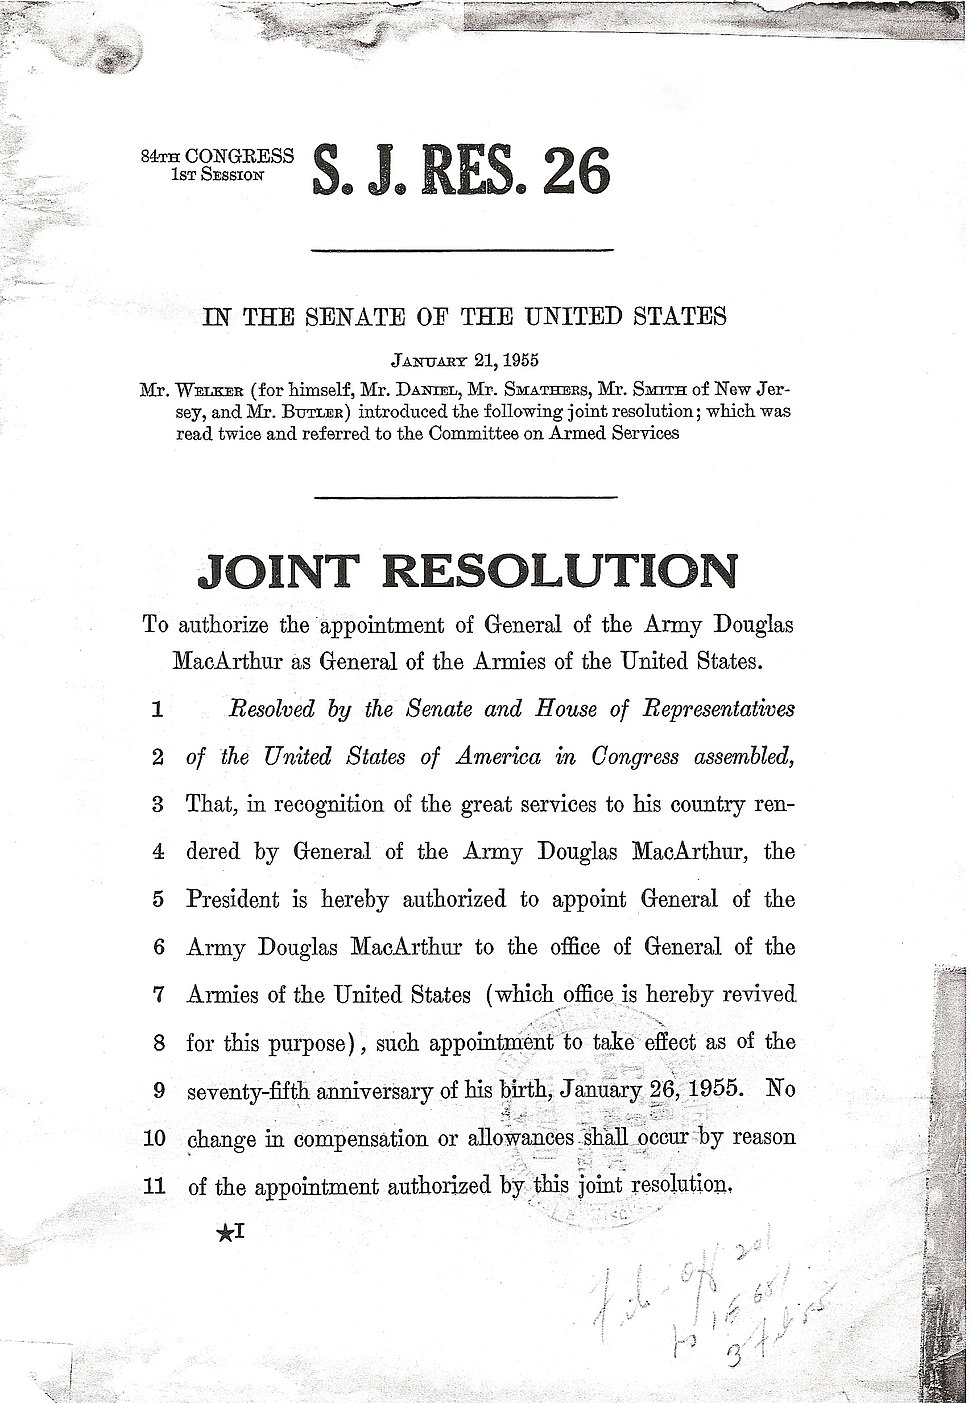 Douglas MacArthur promotion order to General of the Armies